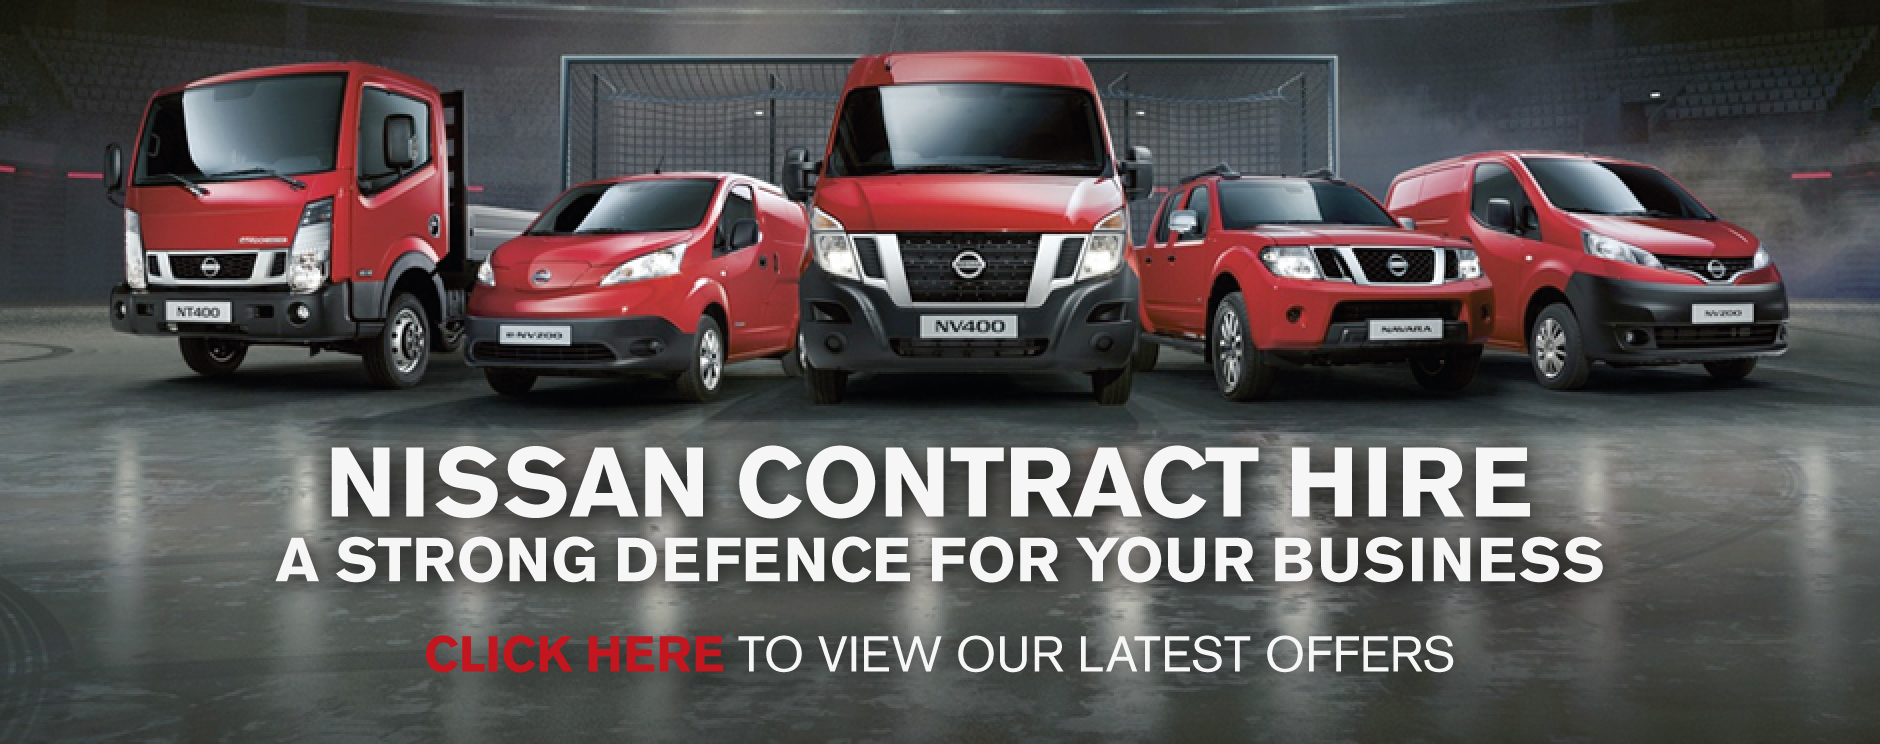 Nissan Van Contract Hire